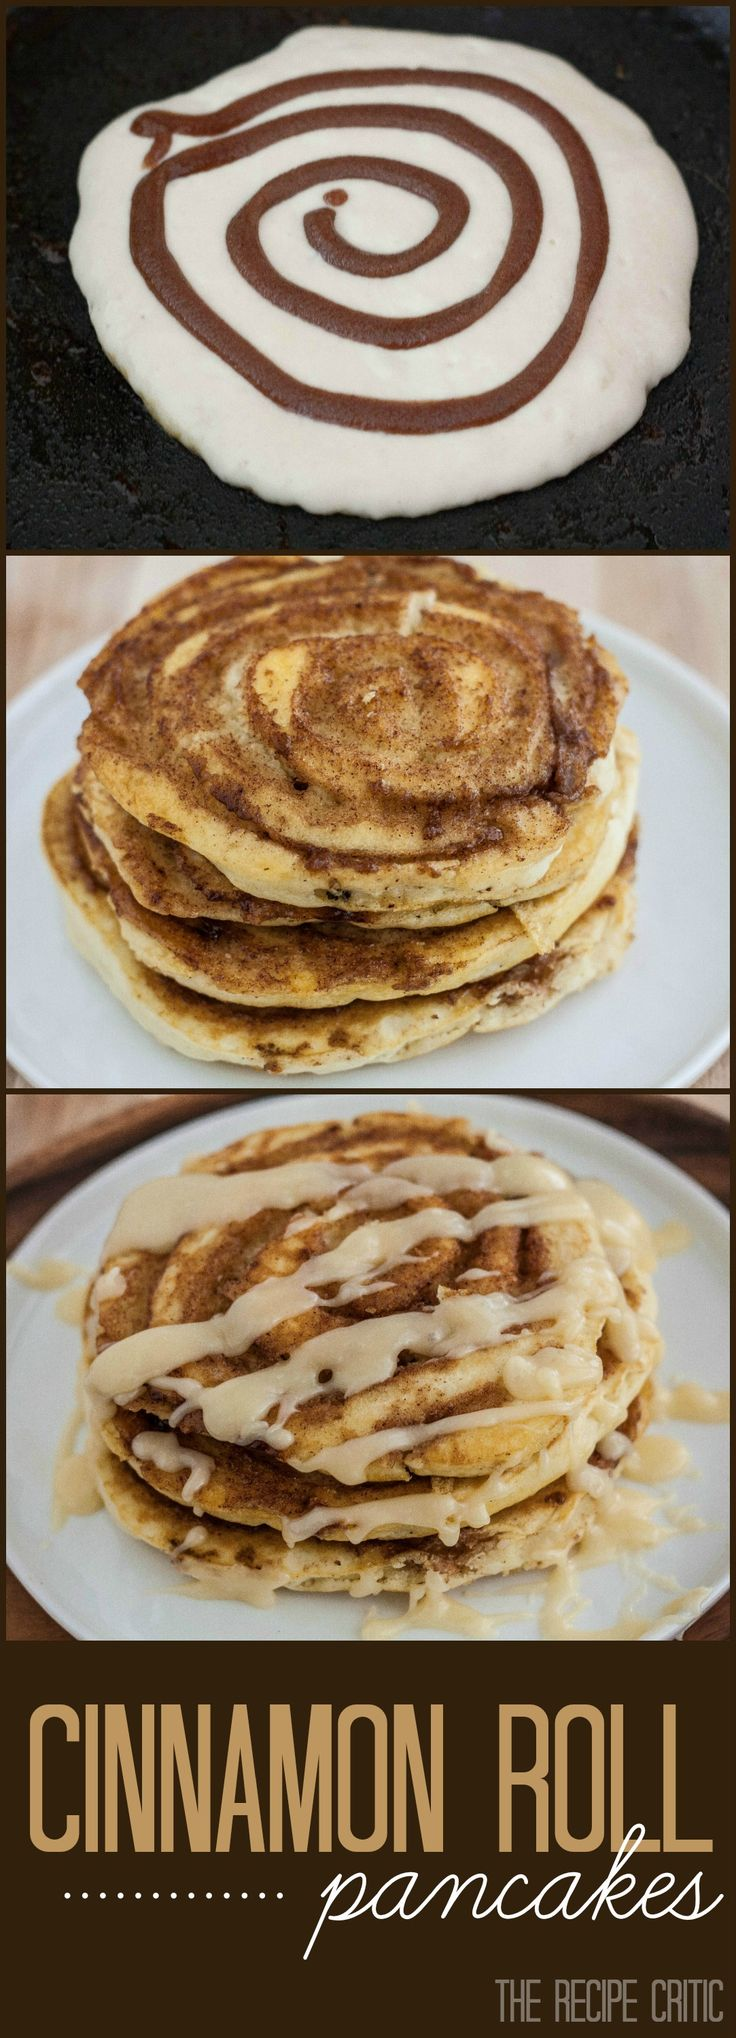 Cinnamon Roll Pancakes at http://therecipecritic.com  A cinnamon roll in the form of a pancake with a warm cream cheese glaze on top!